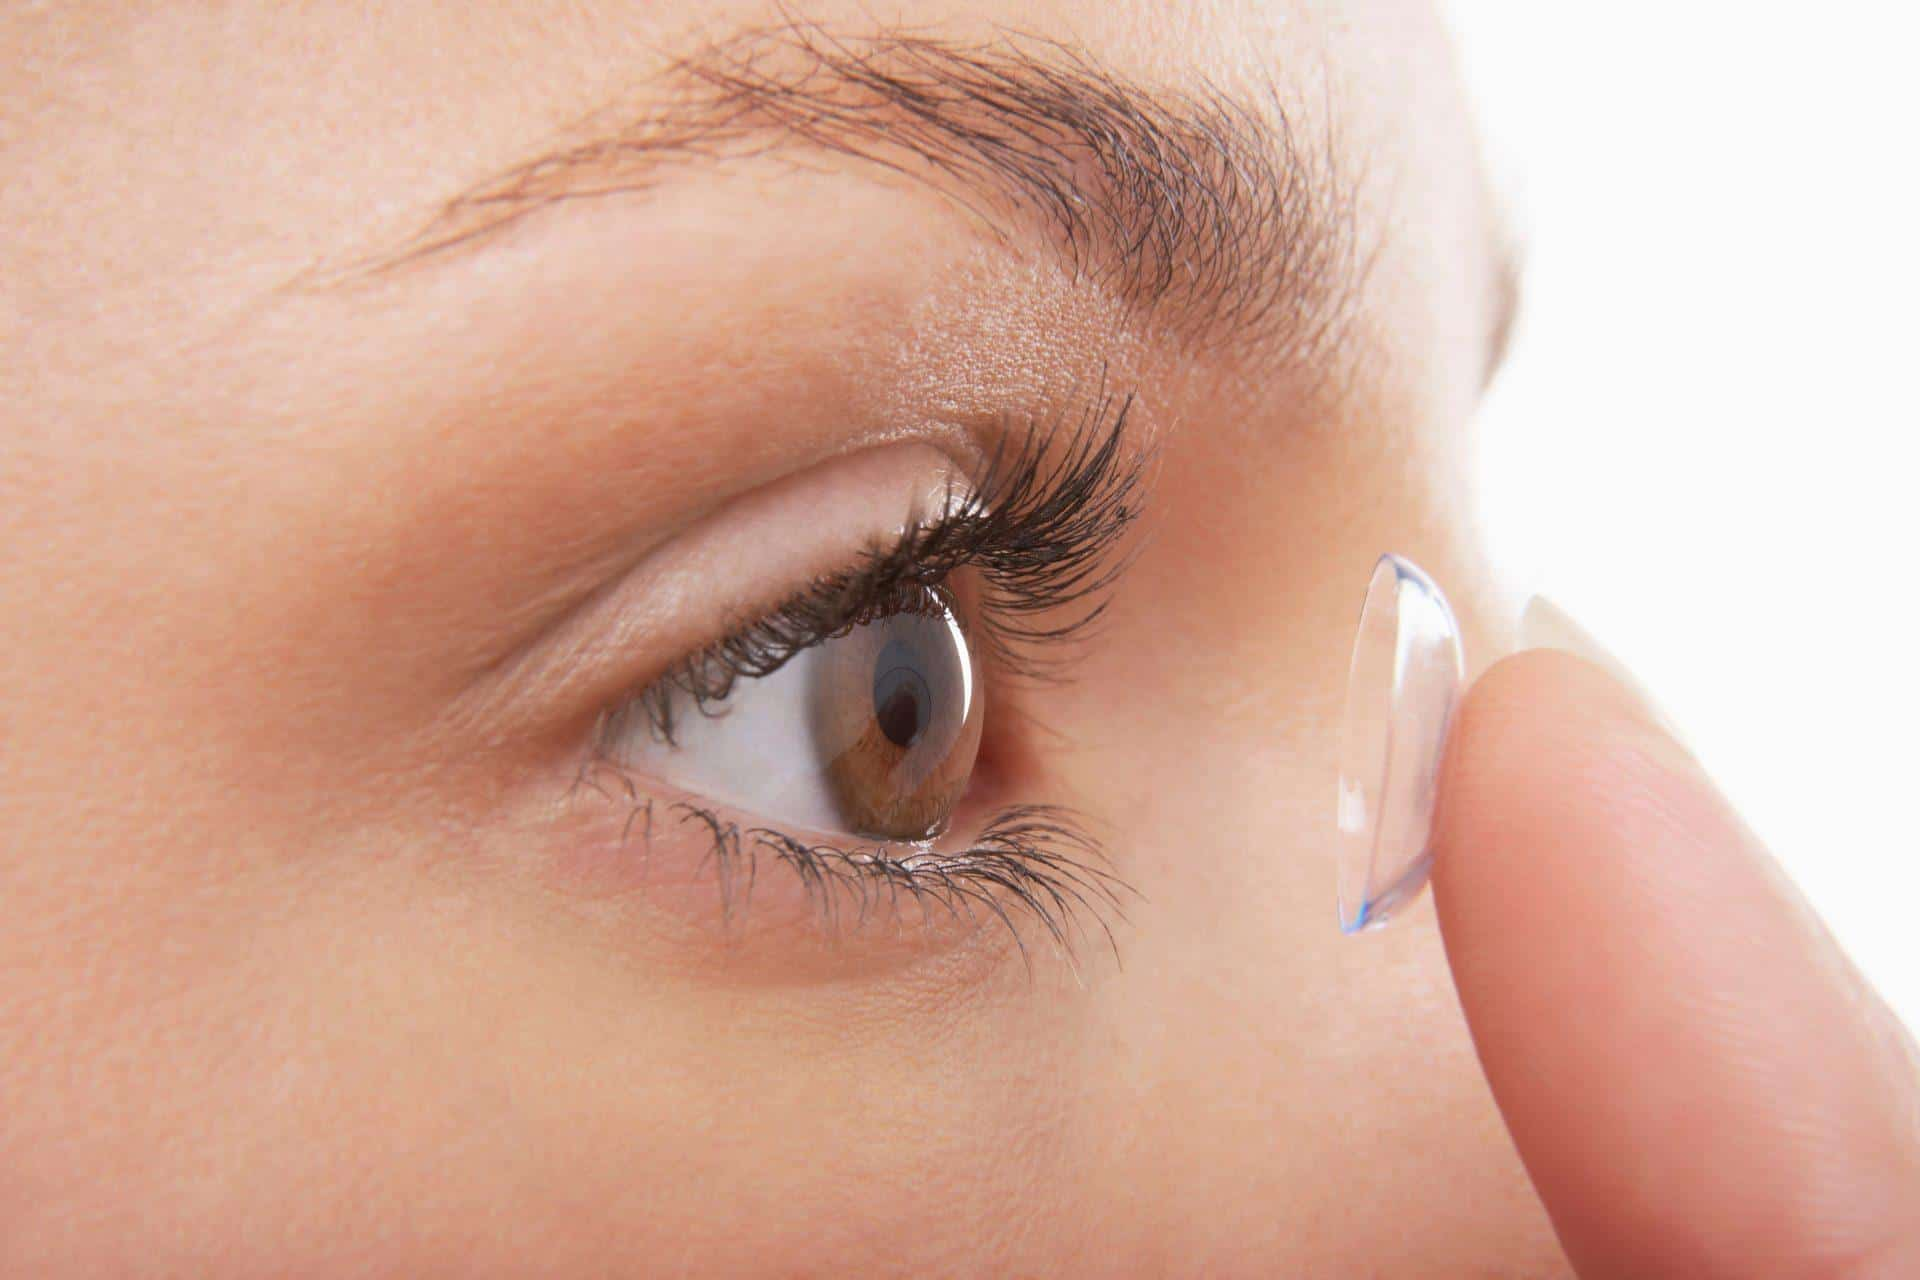 Myths About Contact Lenses